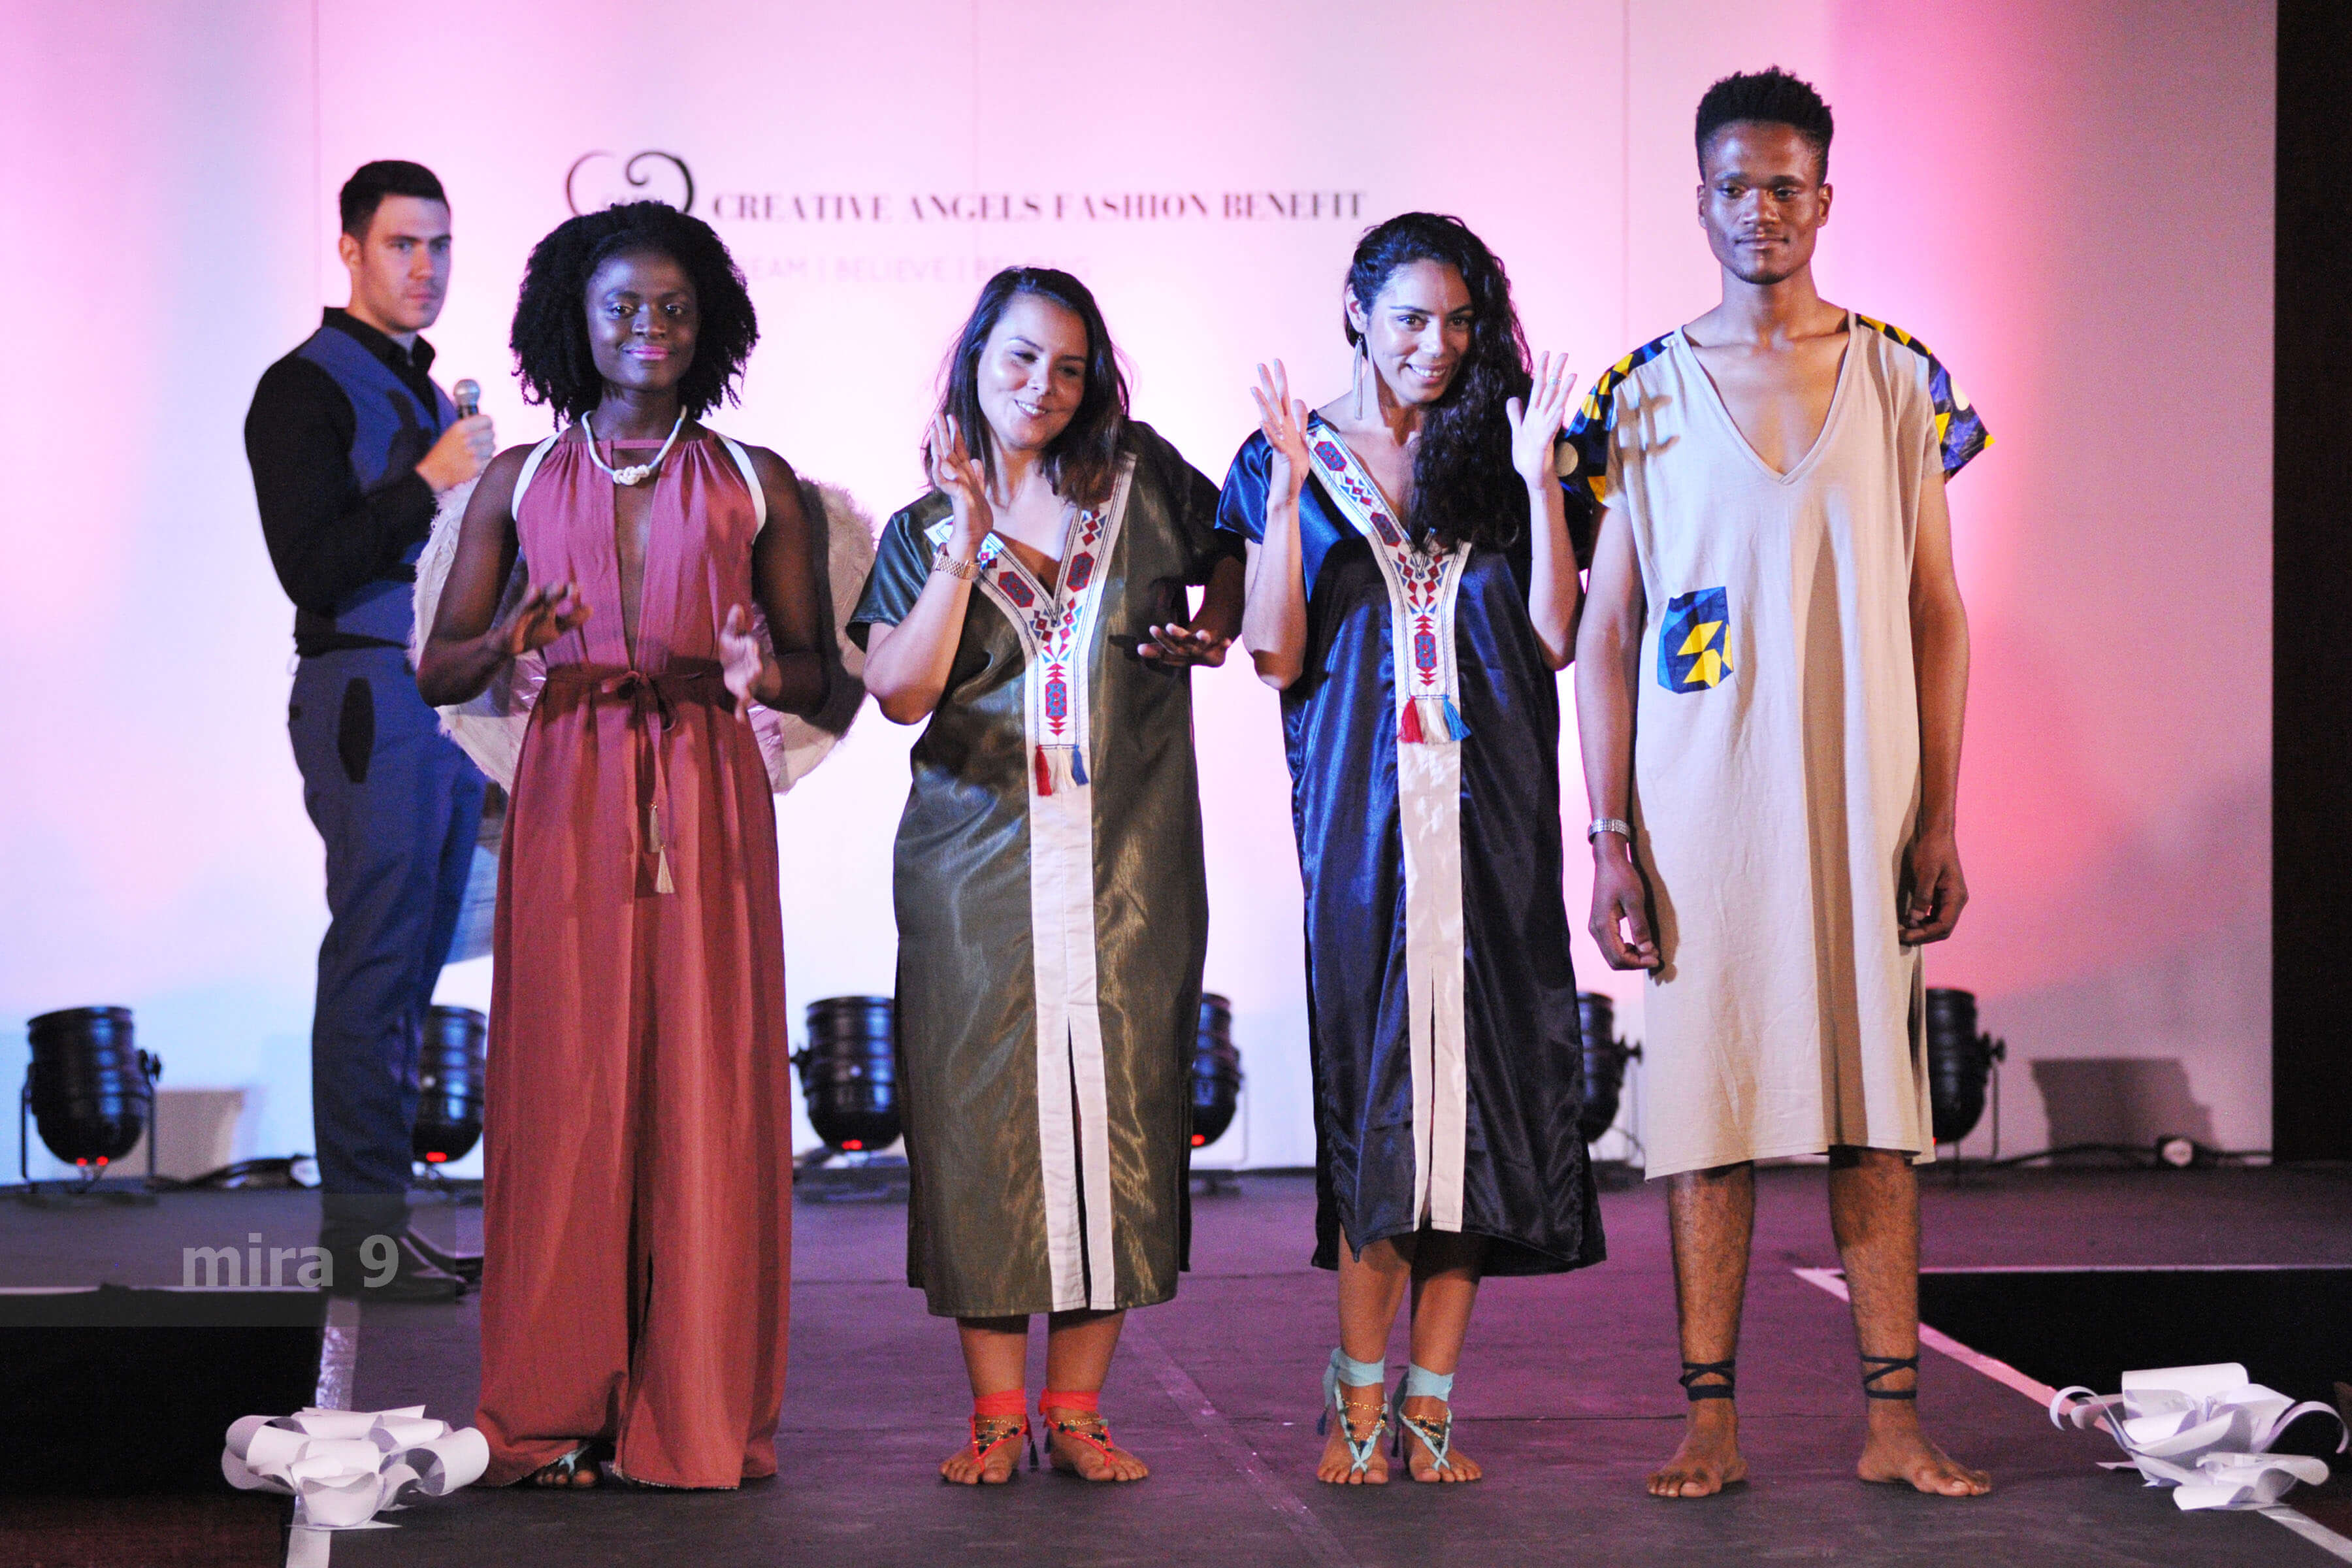 Why do CAFB Fashion Shows start with SA's national anthem?